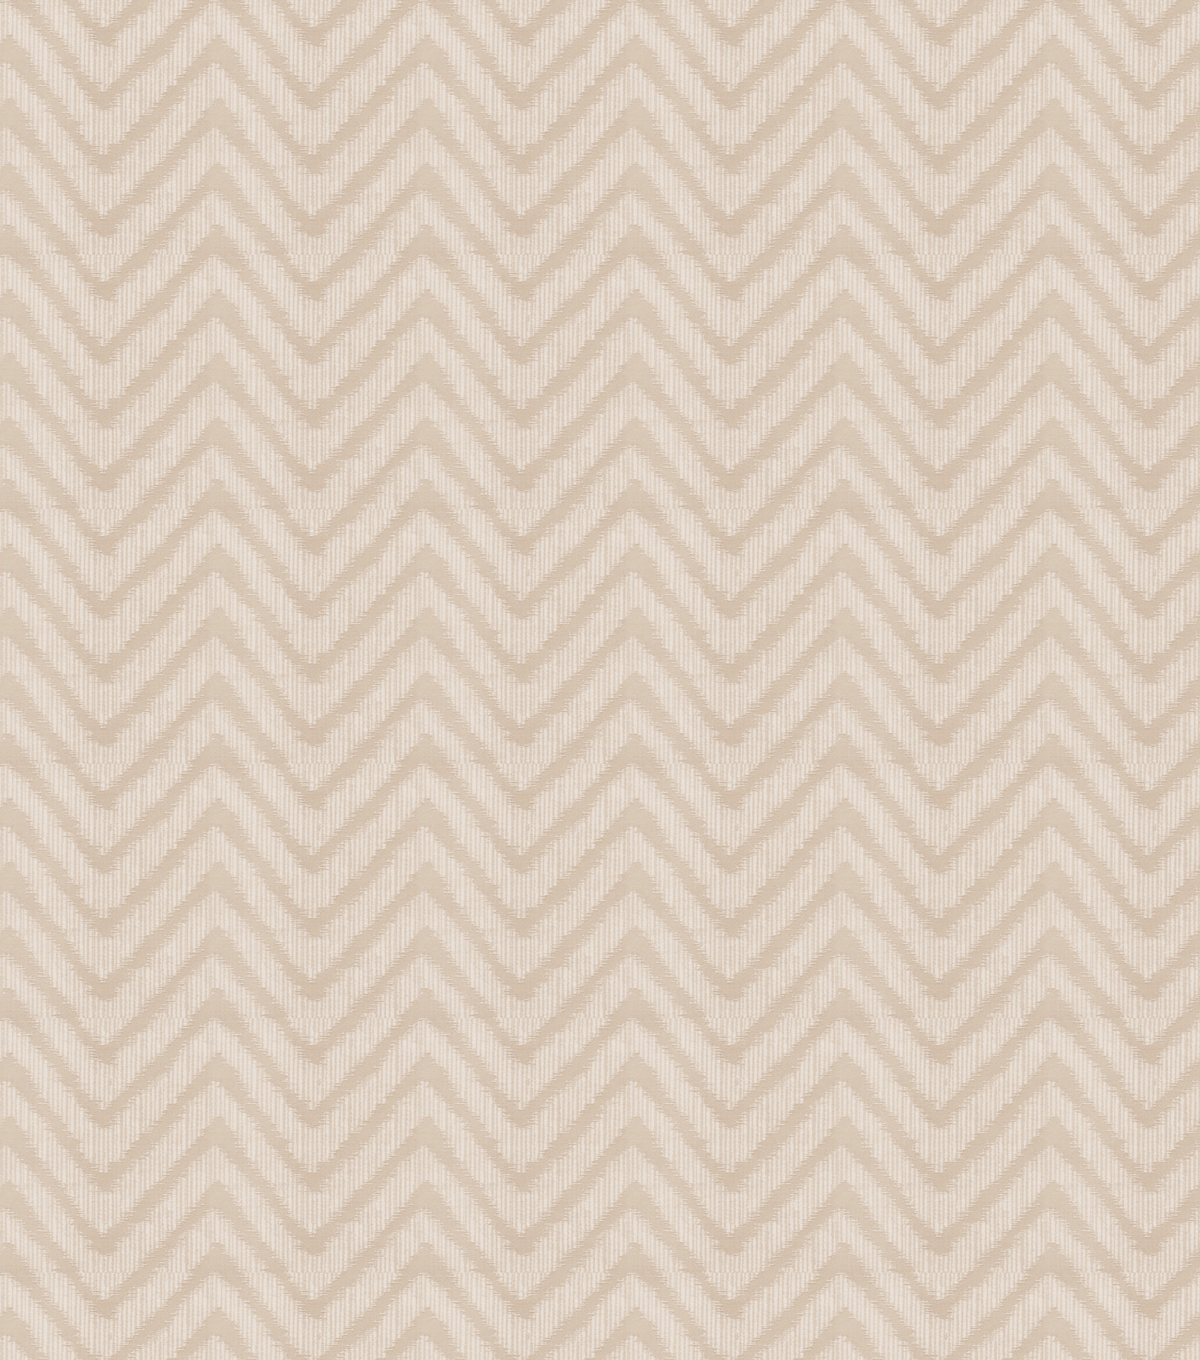 Eaton Square Multi-Purpose Decor Fabric 56\u0022-Trance/Cream